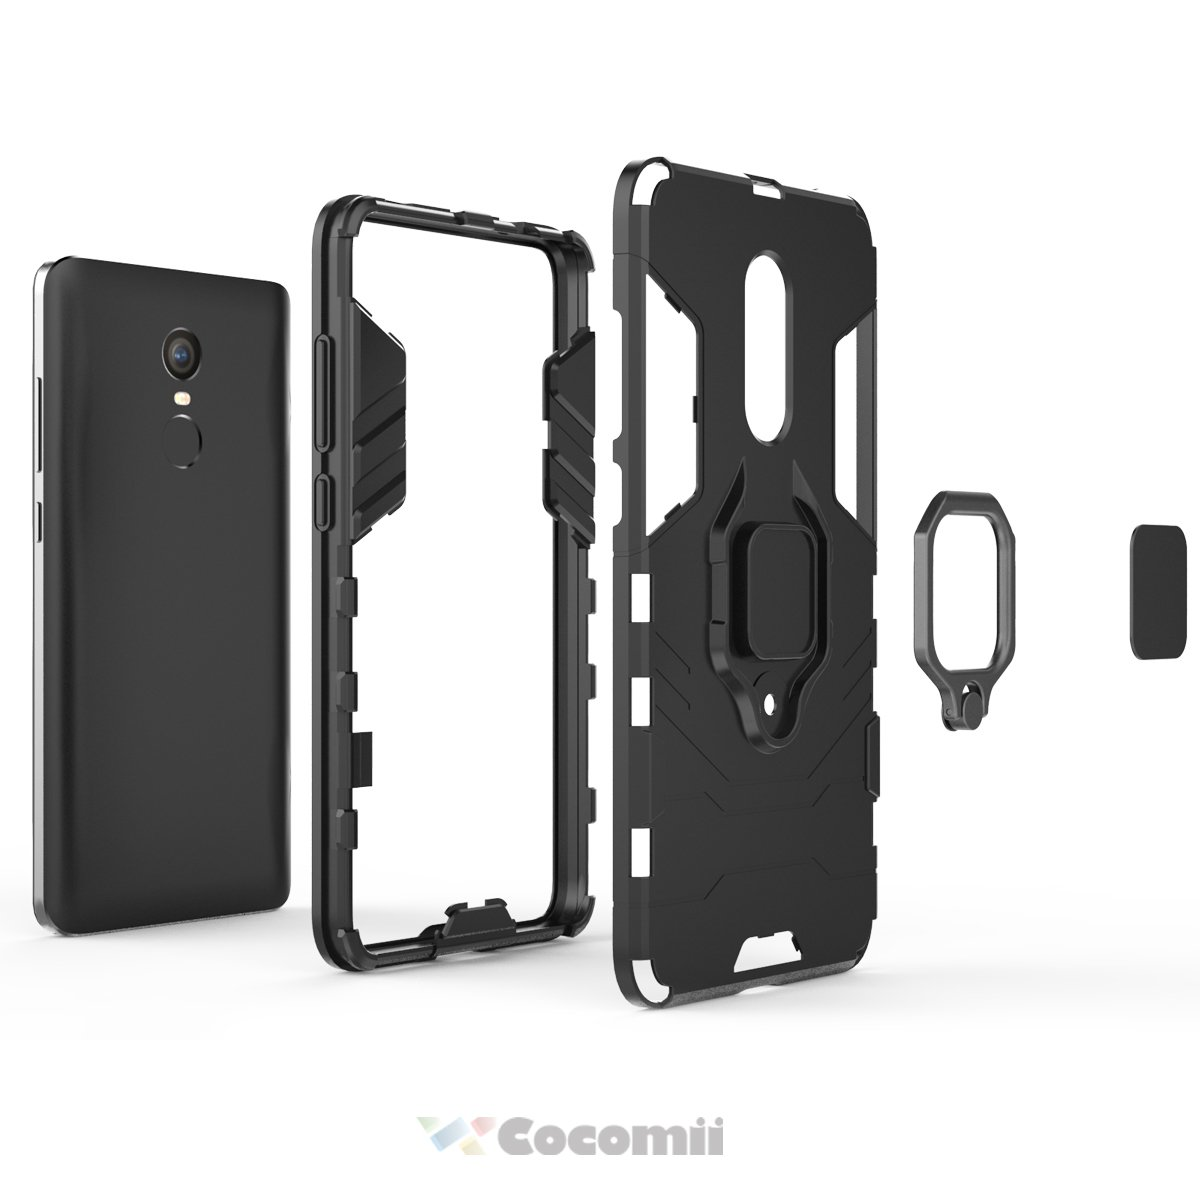 Cocomii Black Panther Armor Xiaomi Redmi Note 4/Note 4X Case New [Heavy Duty] Tactical Metal Ring Grip Kickstand Shockproof [Works with Magnetic Car ...